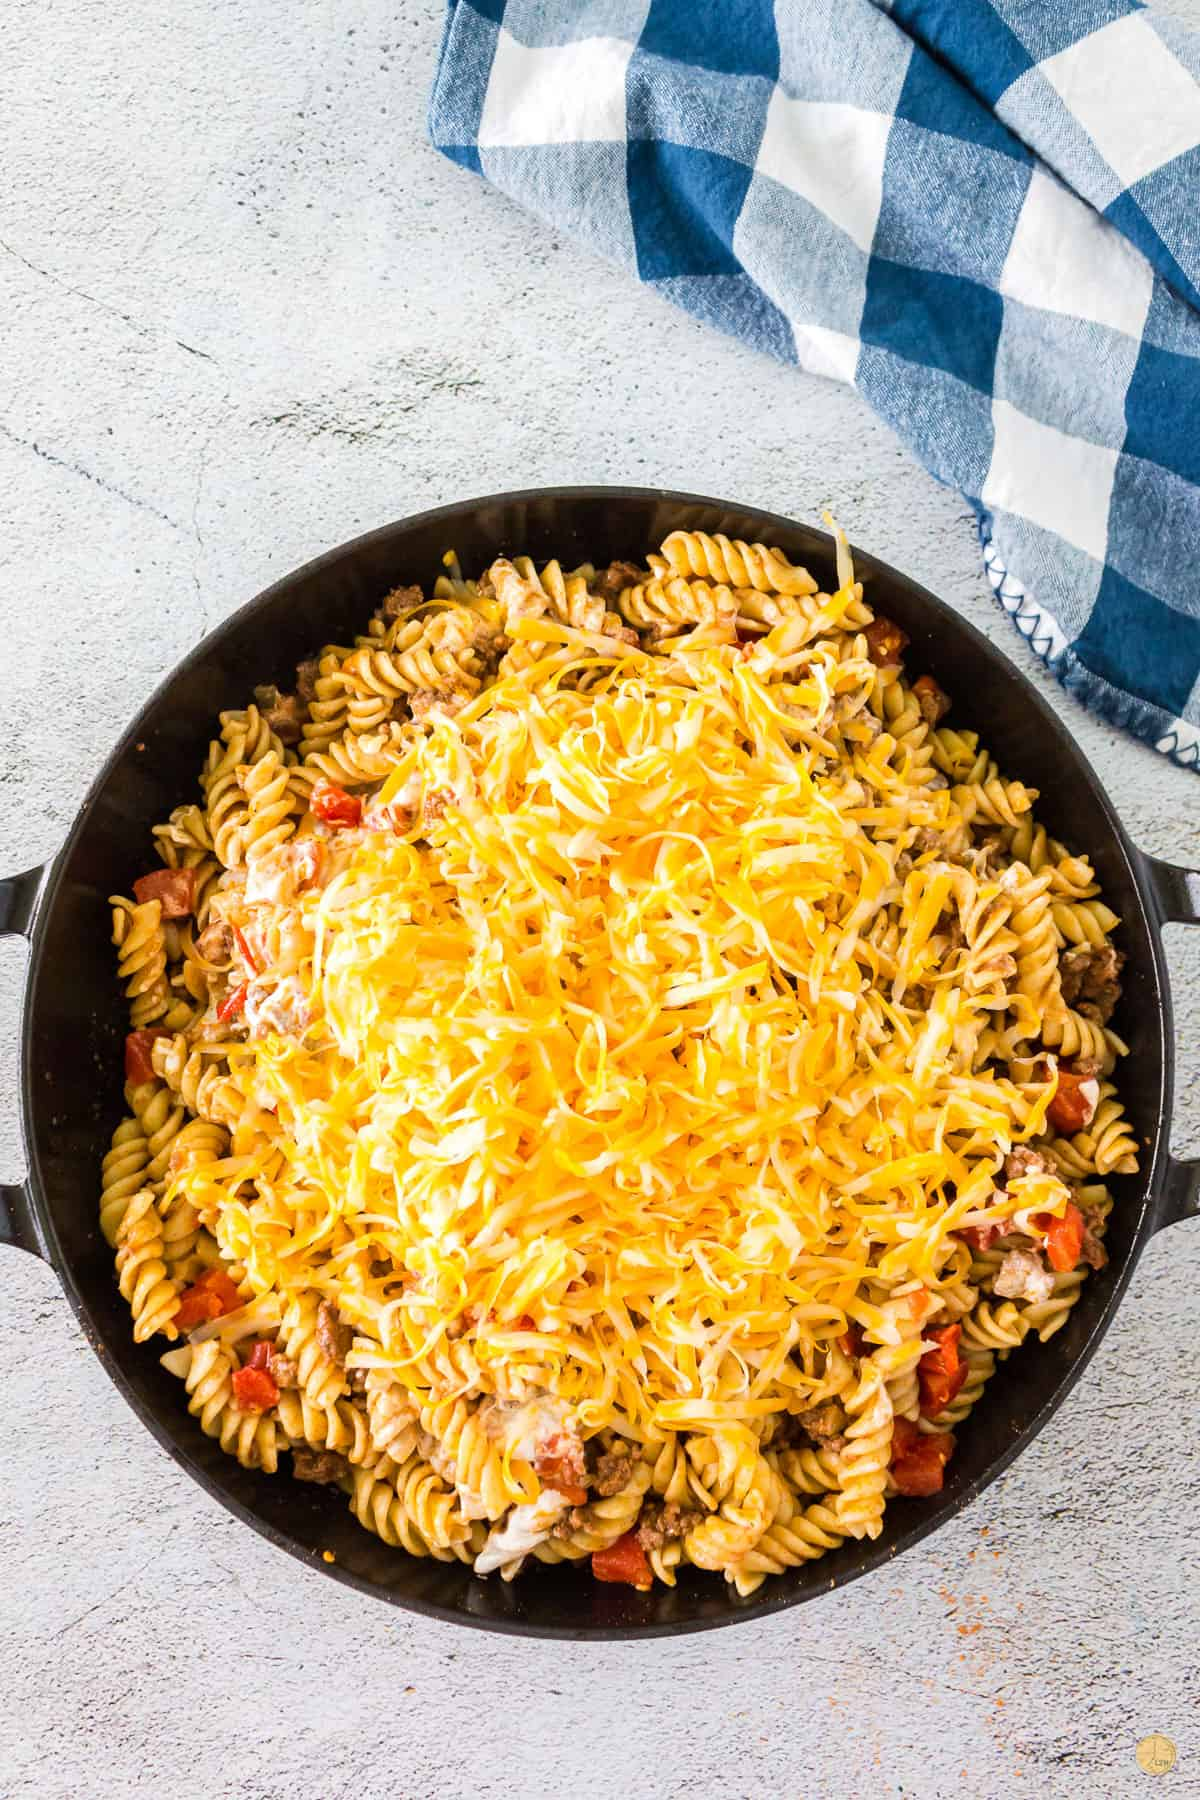 cheese in a pan